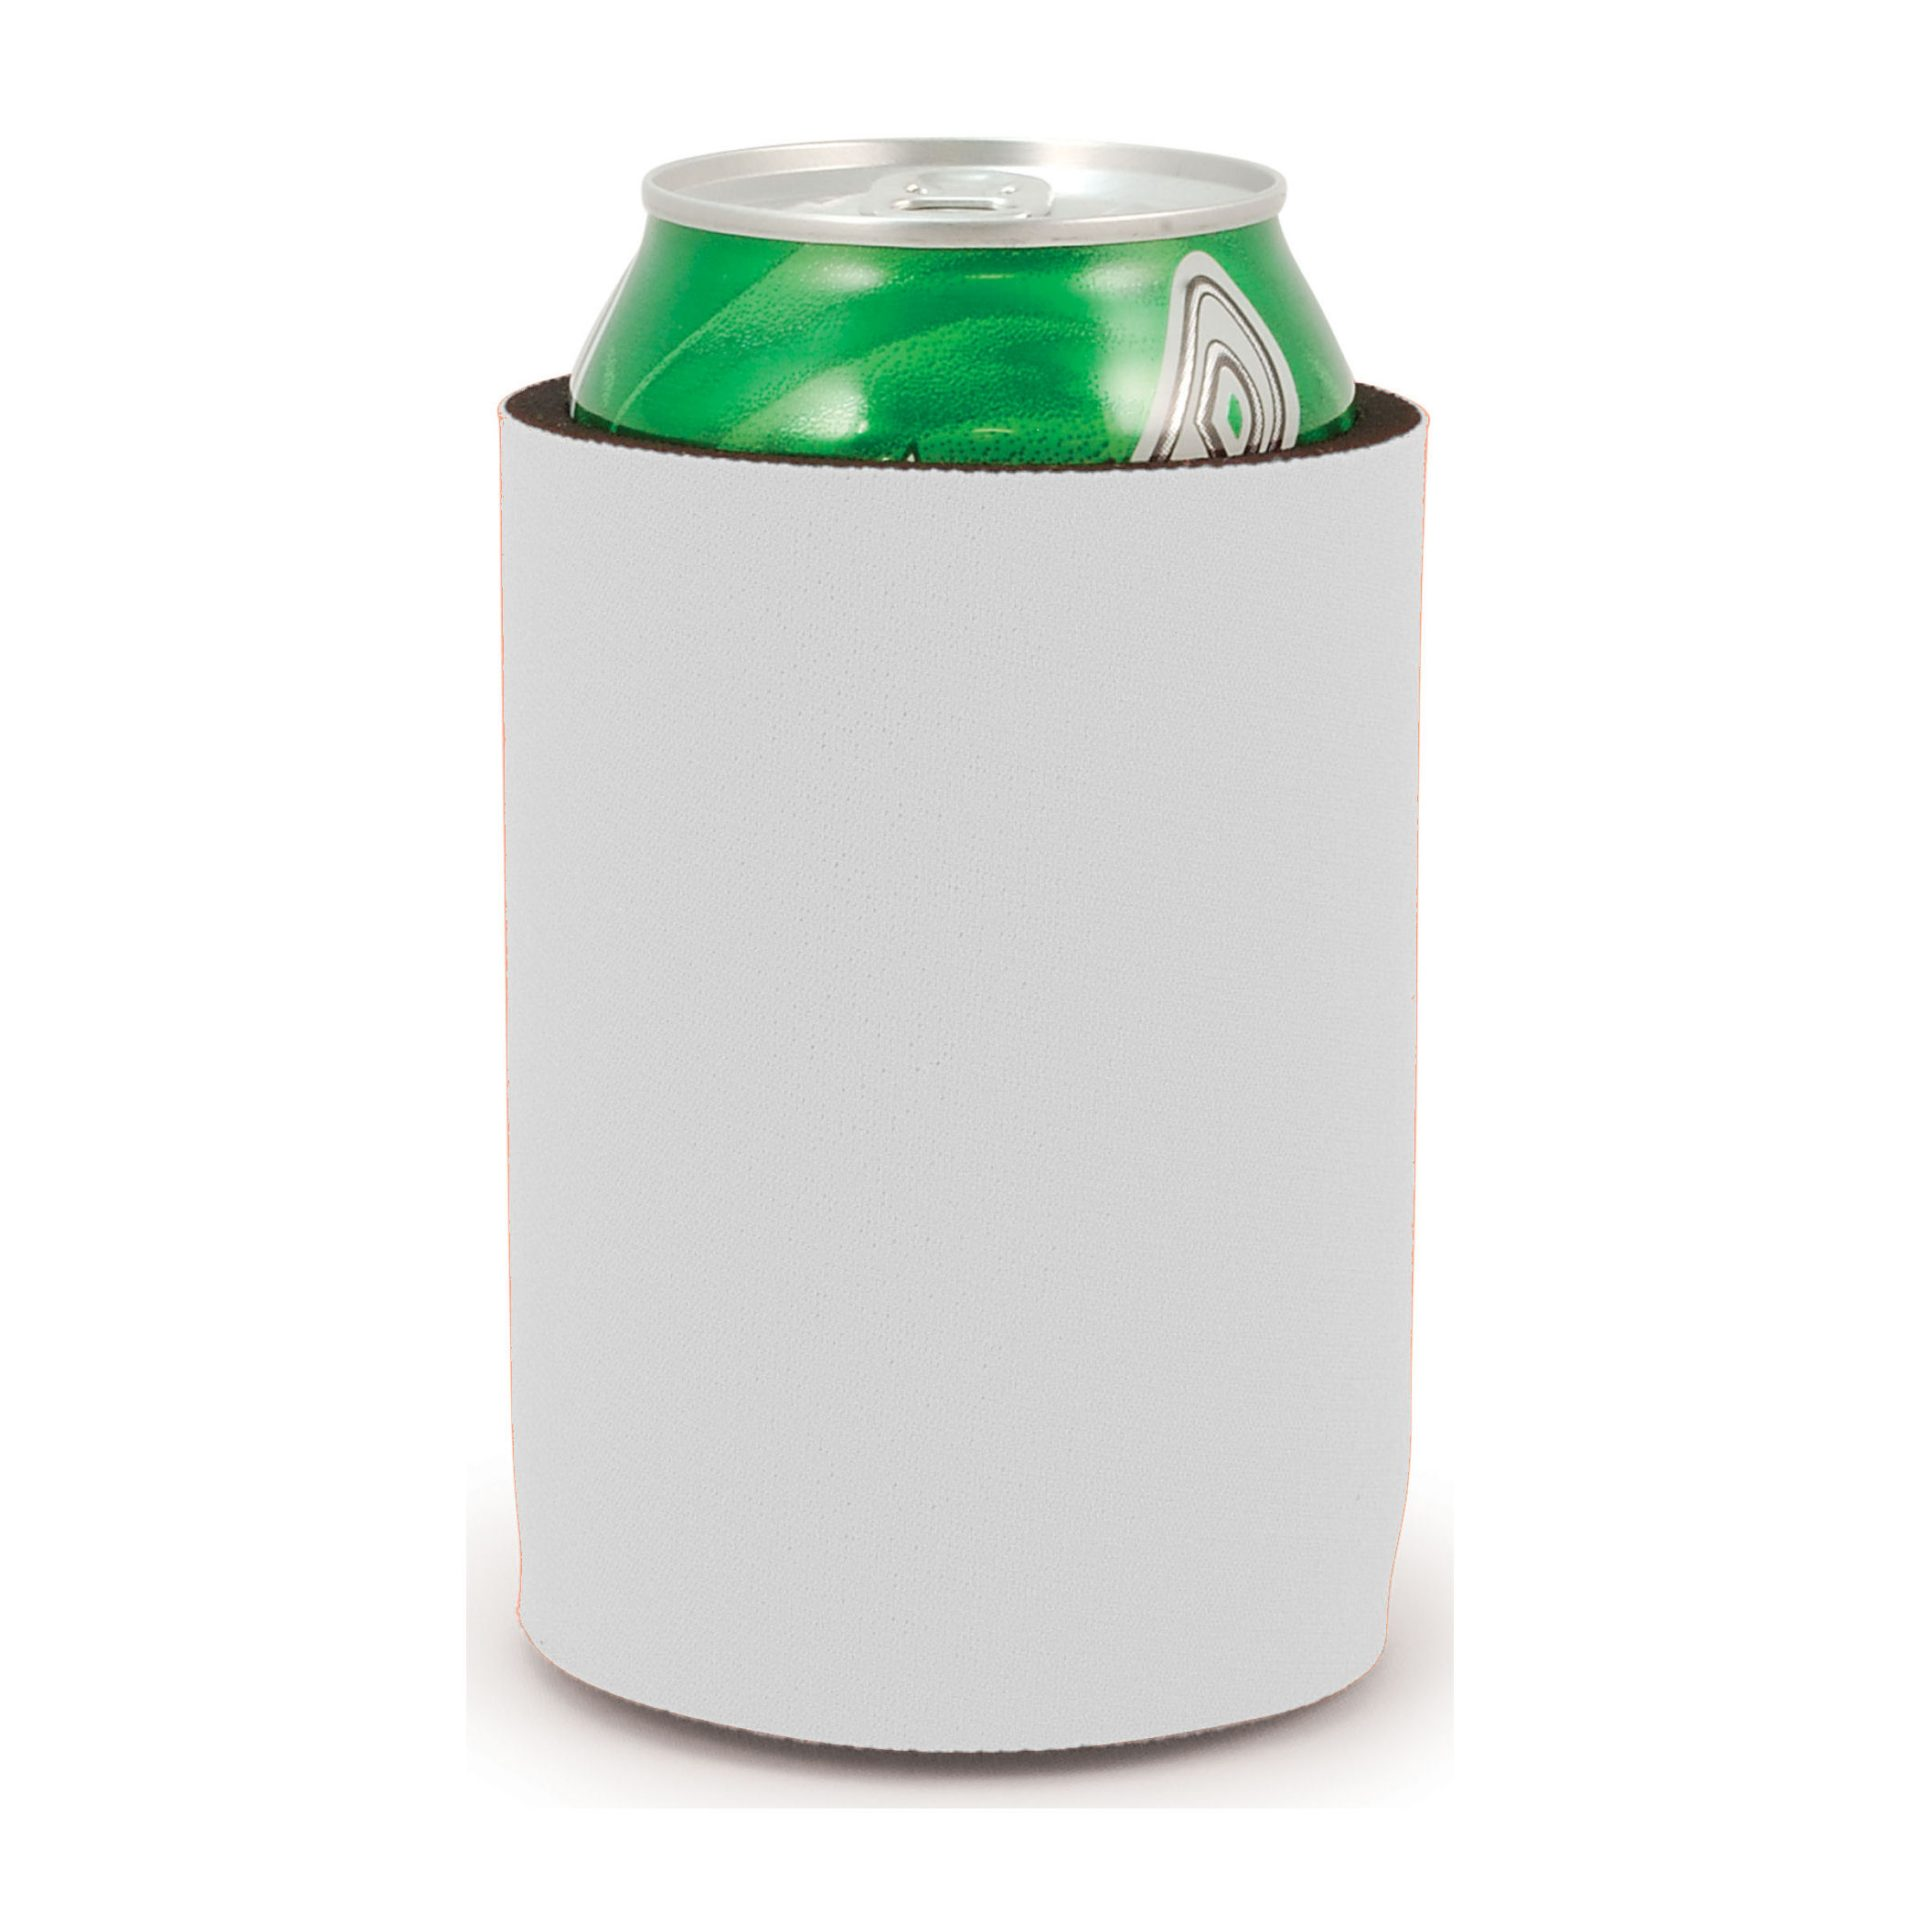 CSBD Blank Beer Can Coolers Premium Quality Soft Drink Coolies Collapsible Deals of the Day · Fast Shipping · Read Ratings & Reviews · Shop Best Sellers2,,+ followers on Twitter.